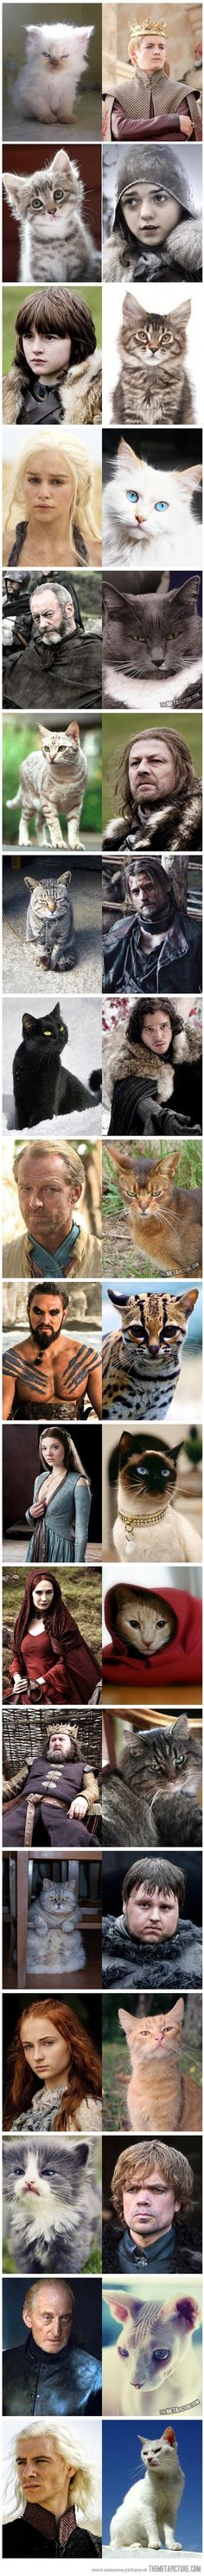 Ha ha!!  If the cast of Game of Thrones was replaced with cats…